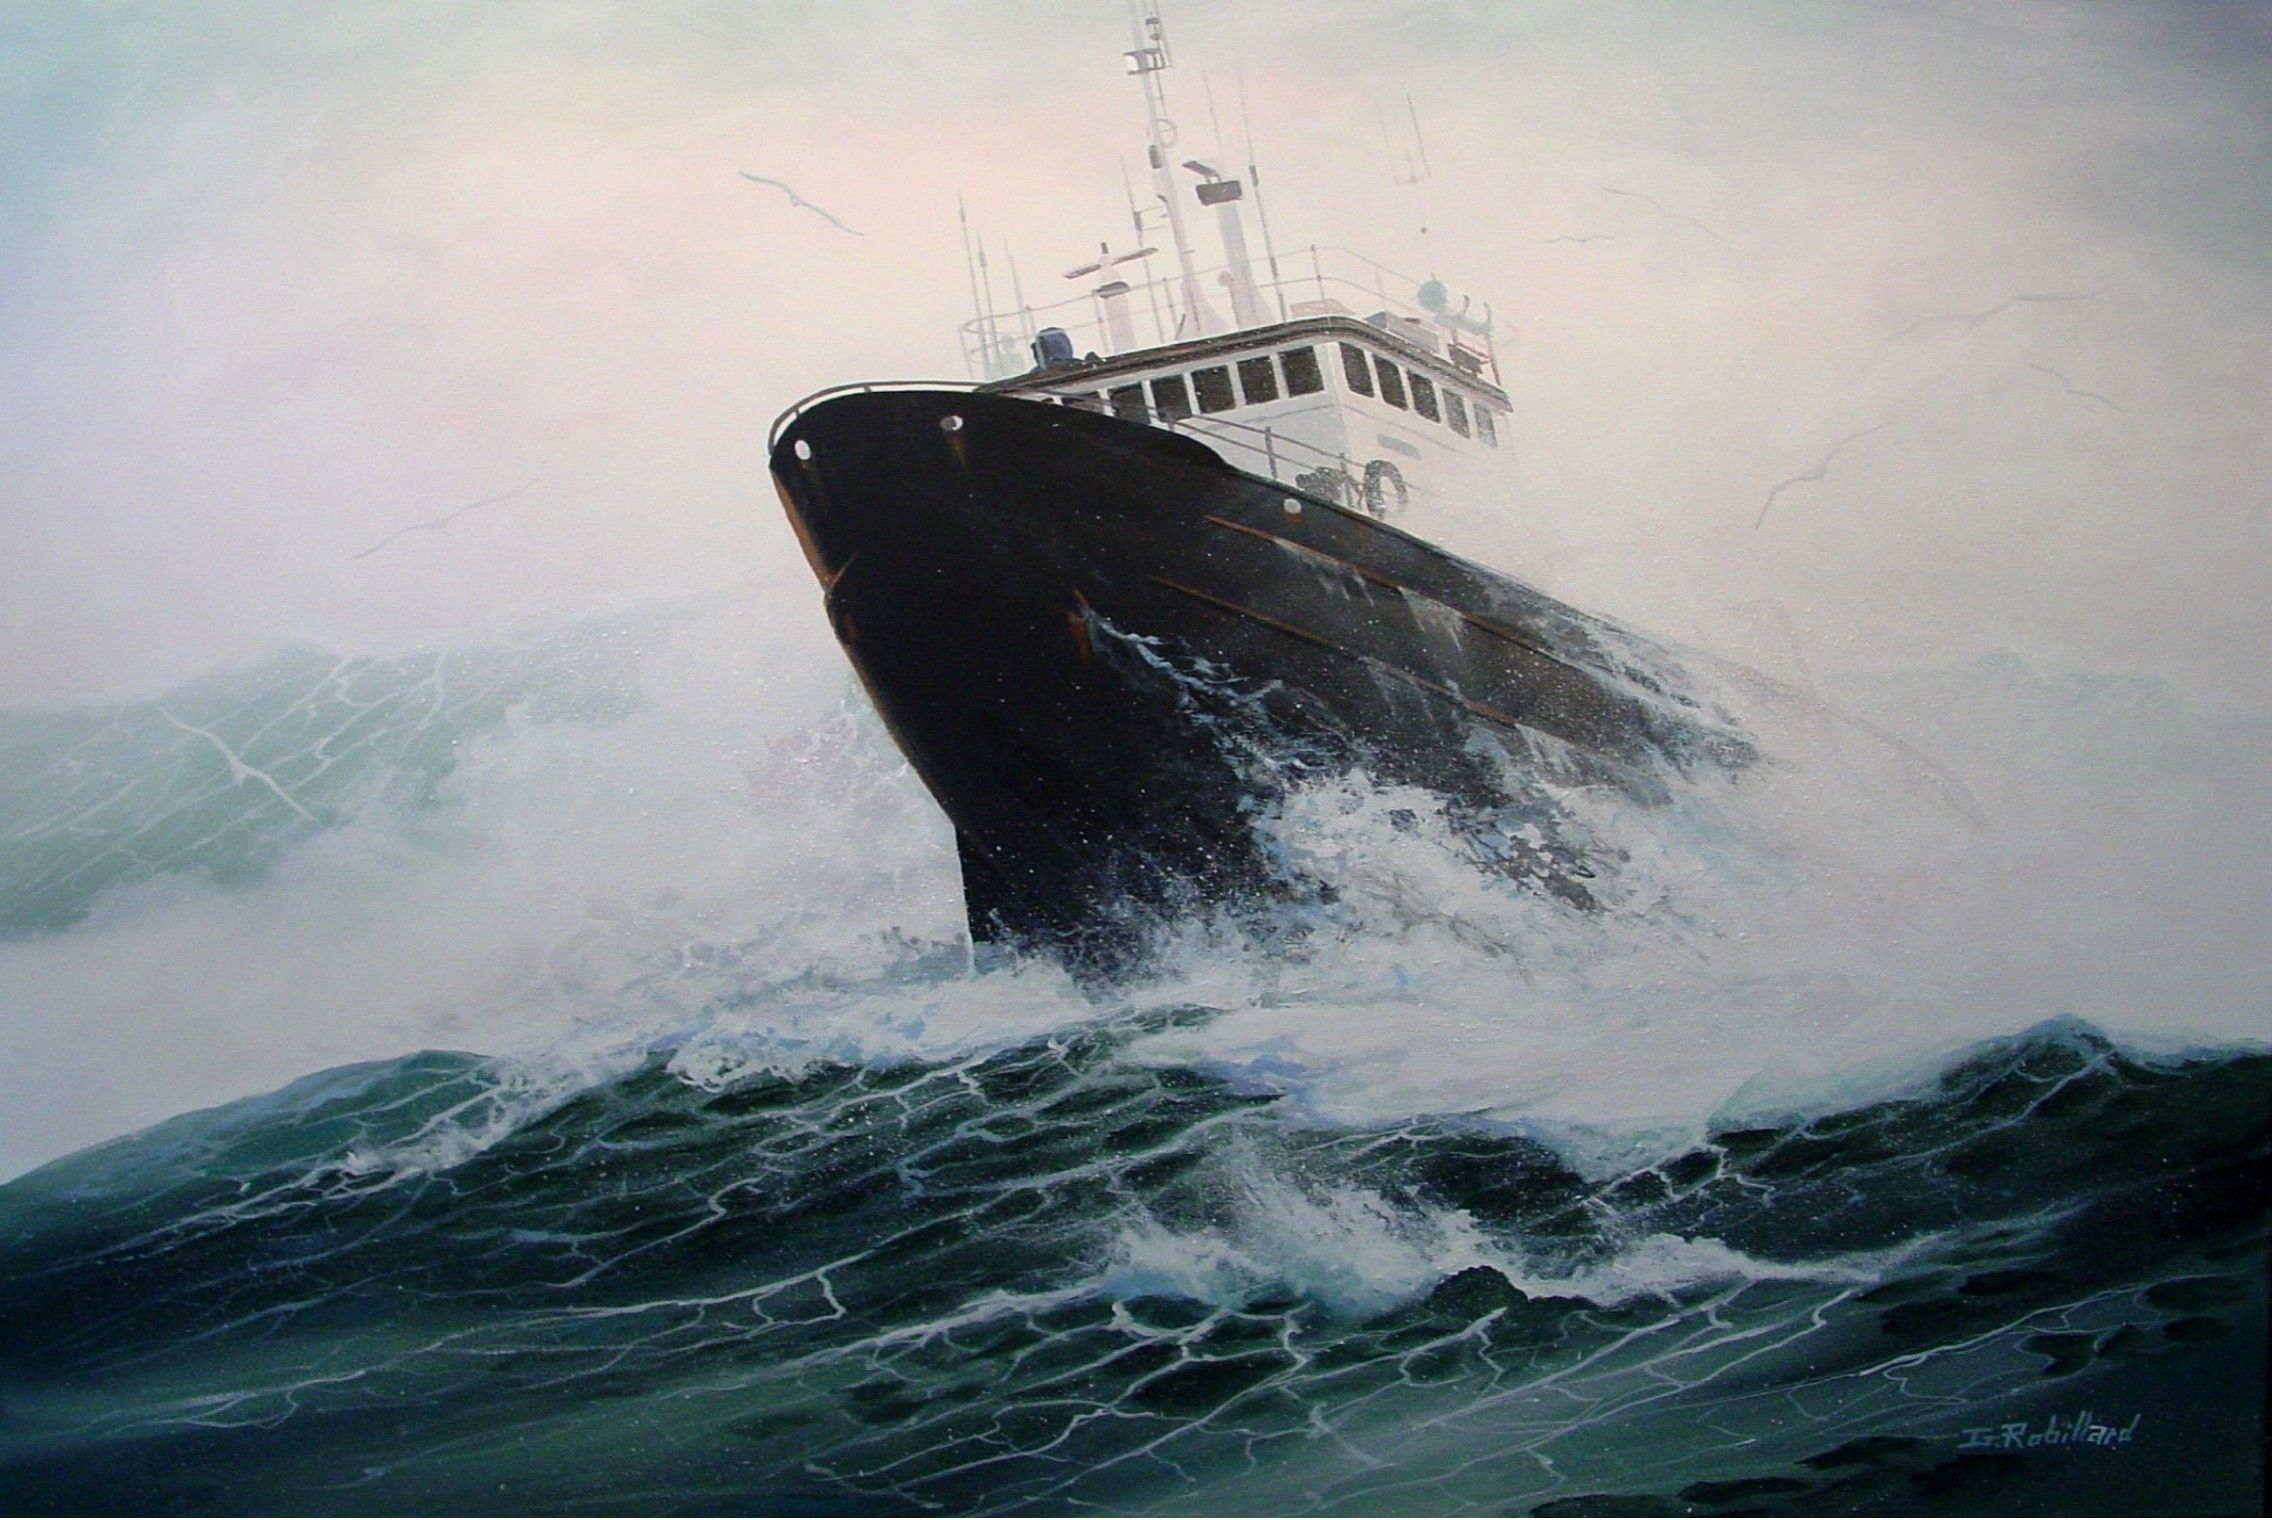 ship in rough sea - Google Search | Riders on the storm ...